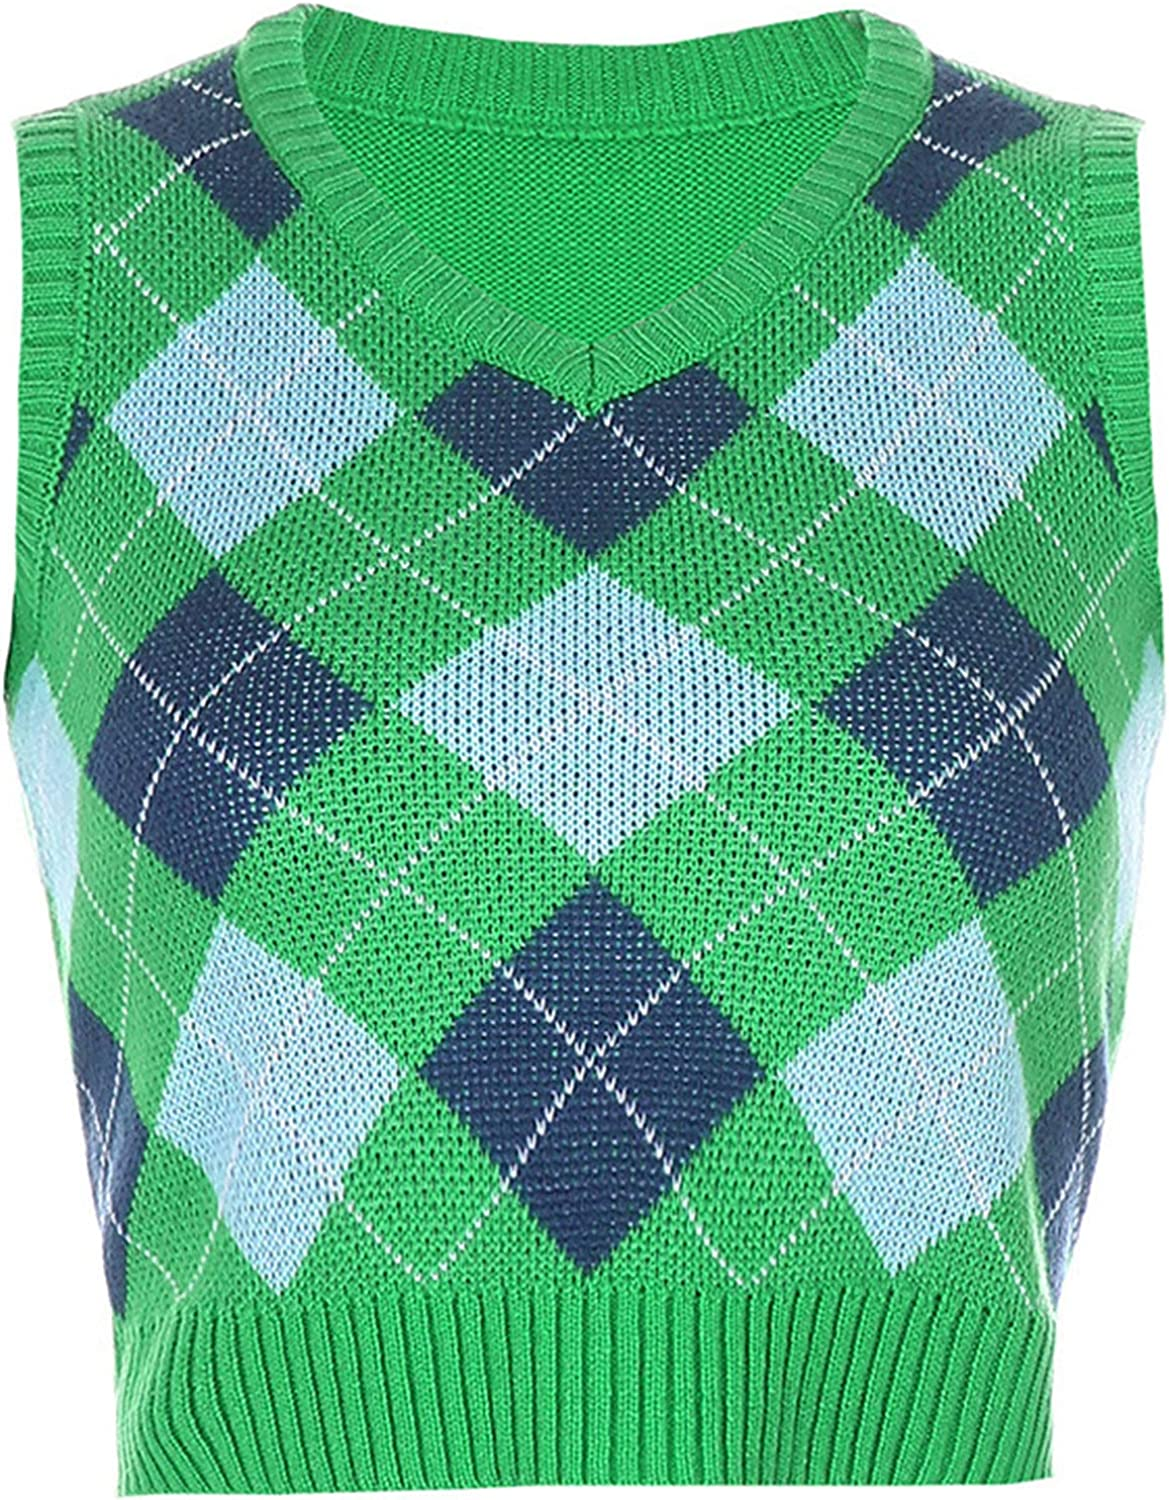 Women Plaid Knitted Sweater Vest Preppy Style Knitwear Tank Top V-Neck Sleeveless Casual Pullover Tank Tops (Green 2,Small)